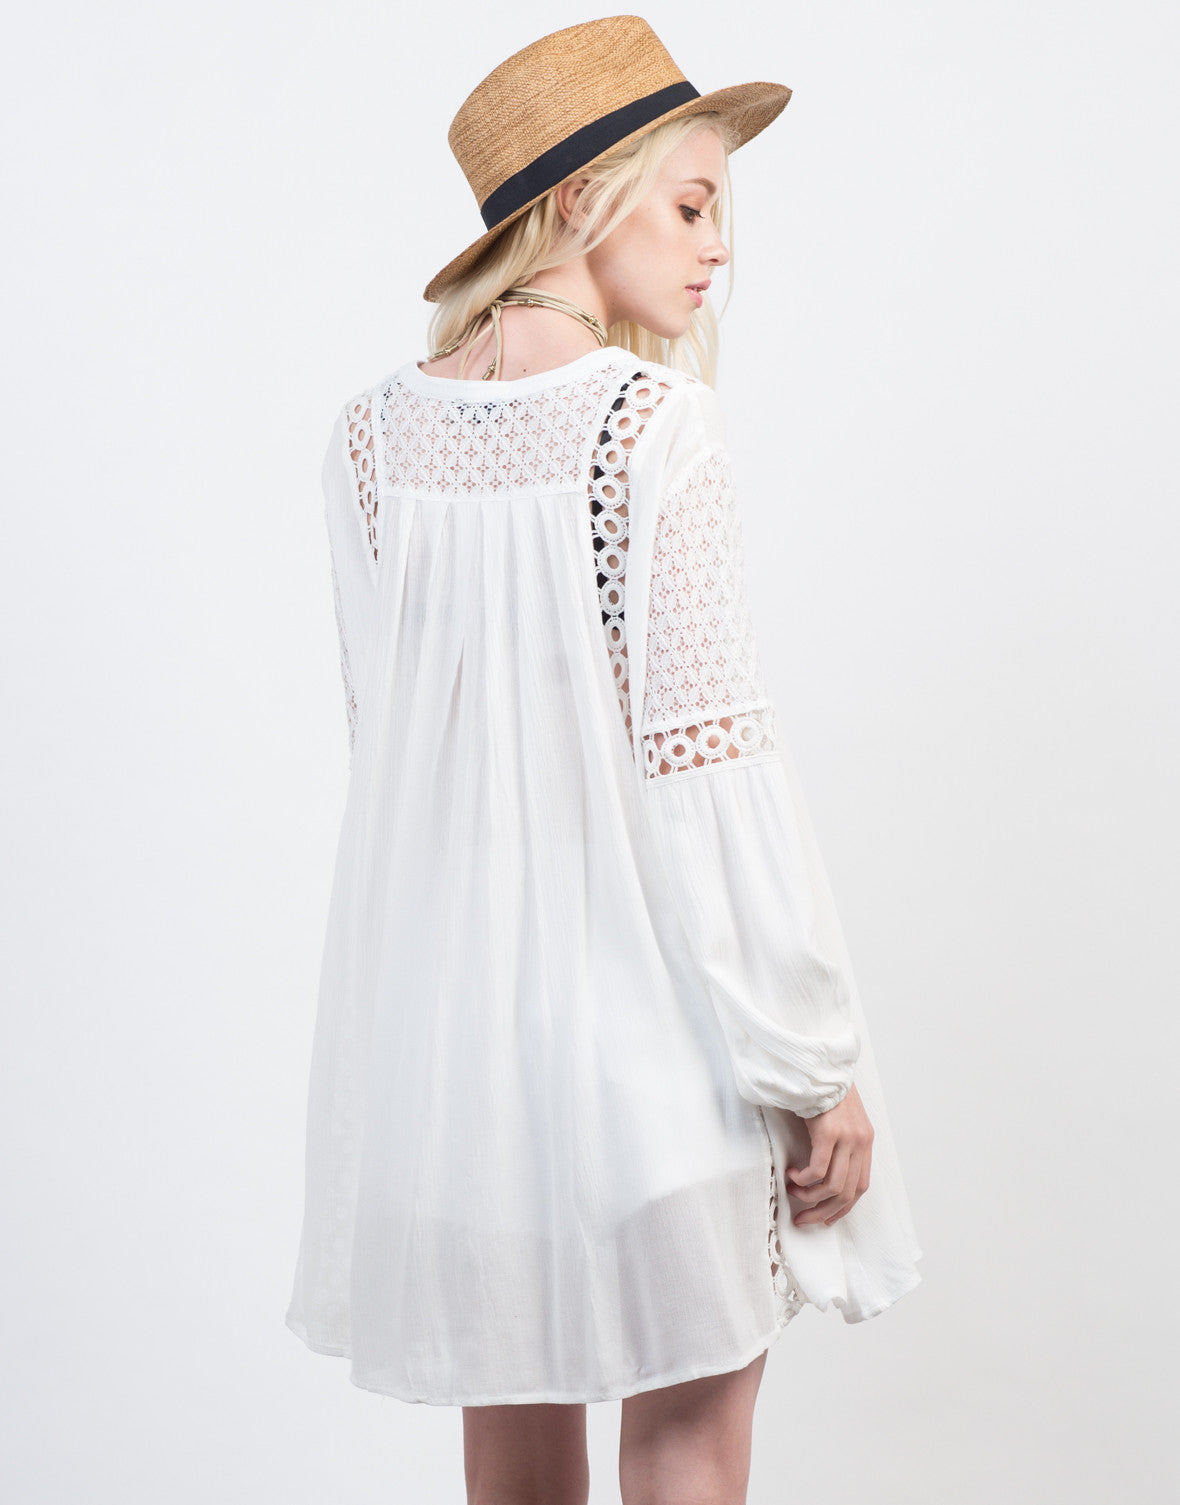 Back View of Crochet Lace Boho Dress